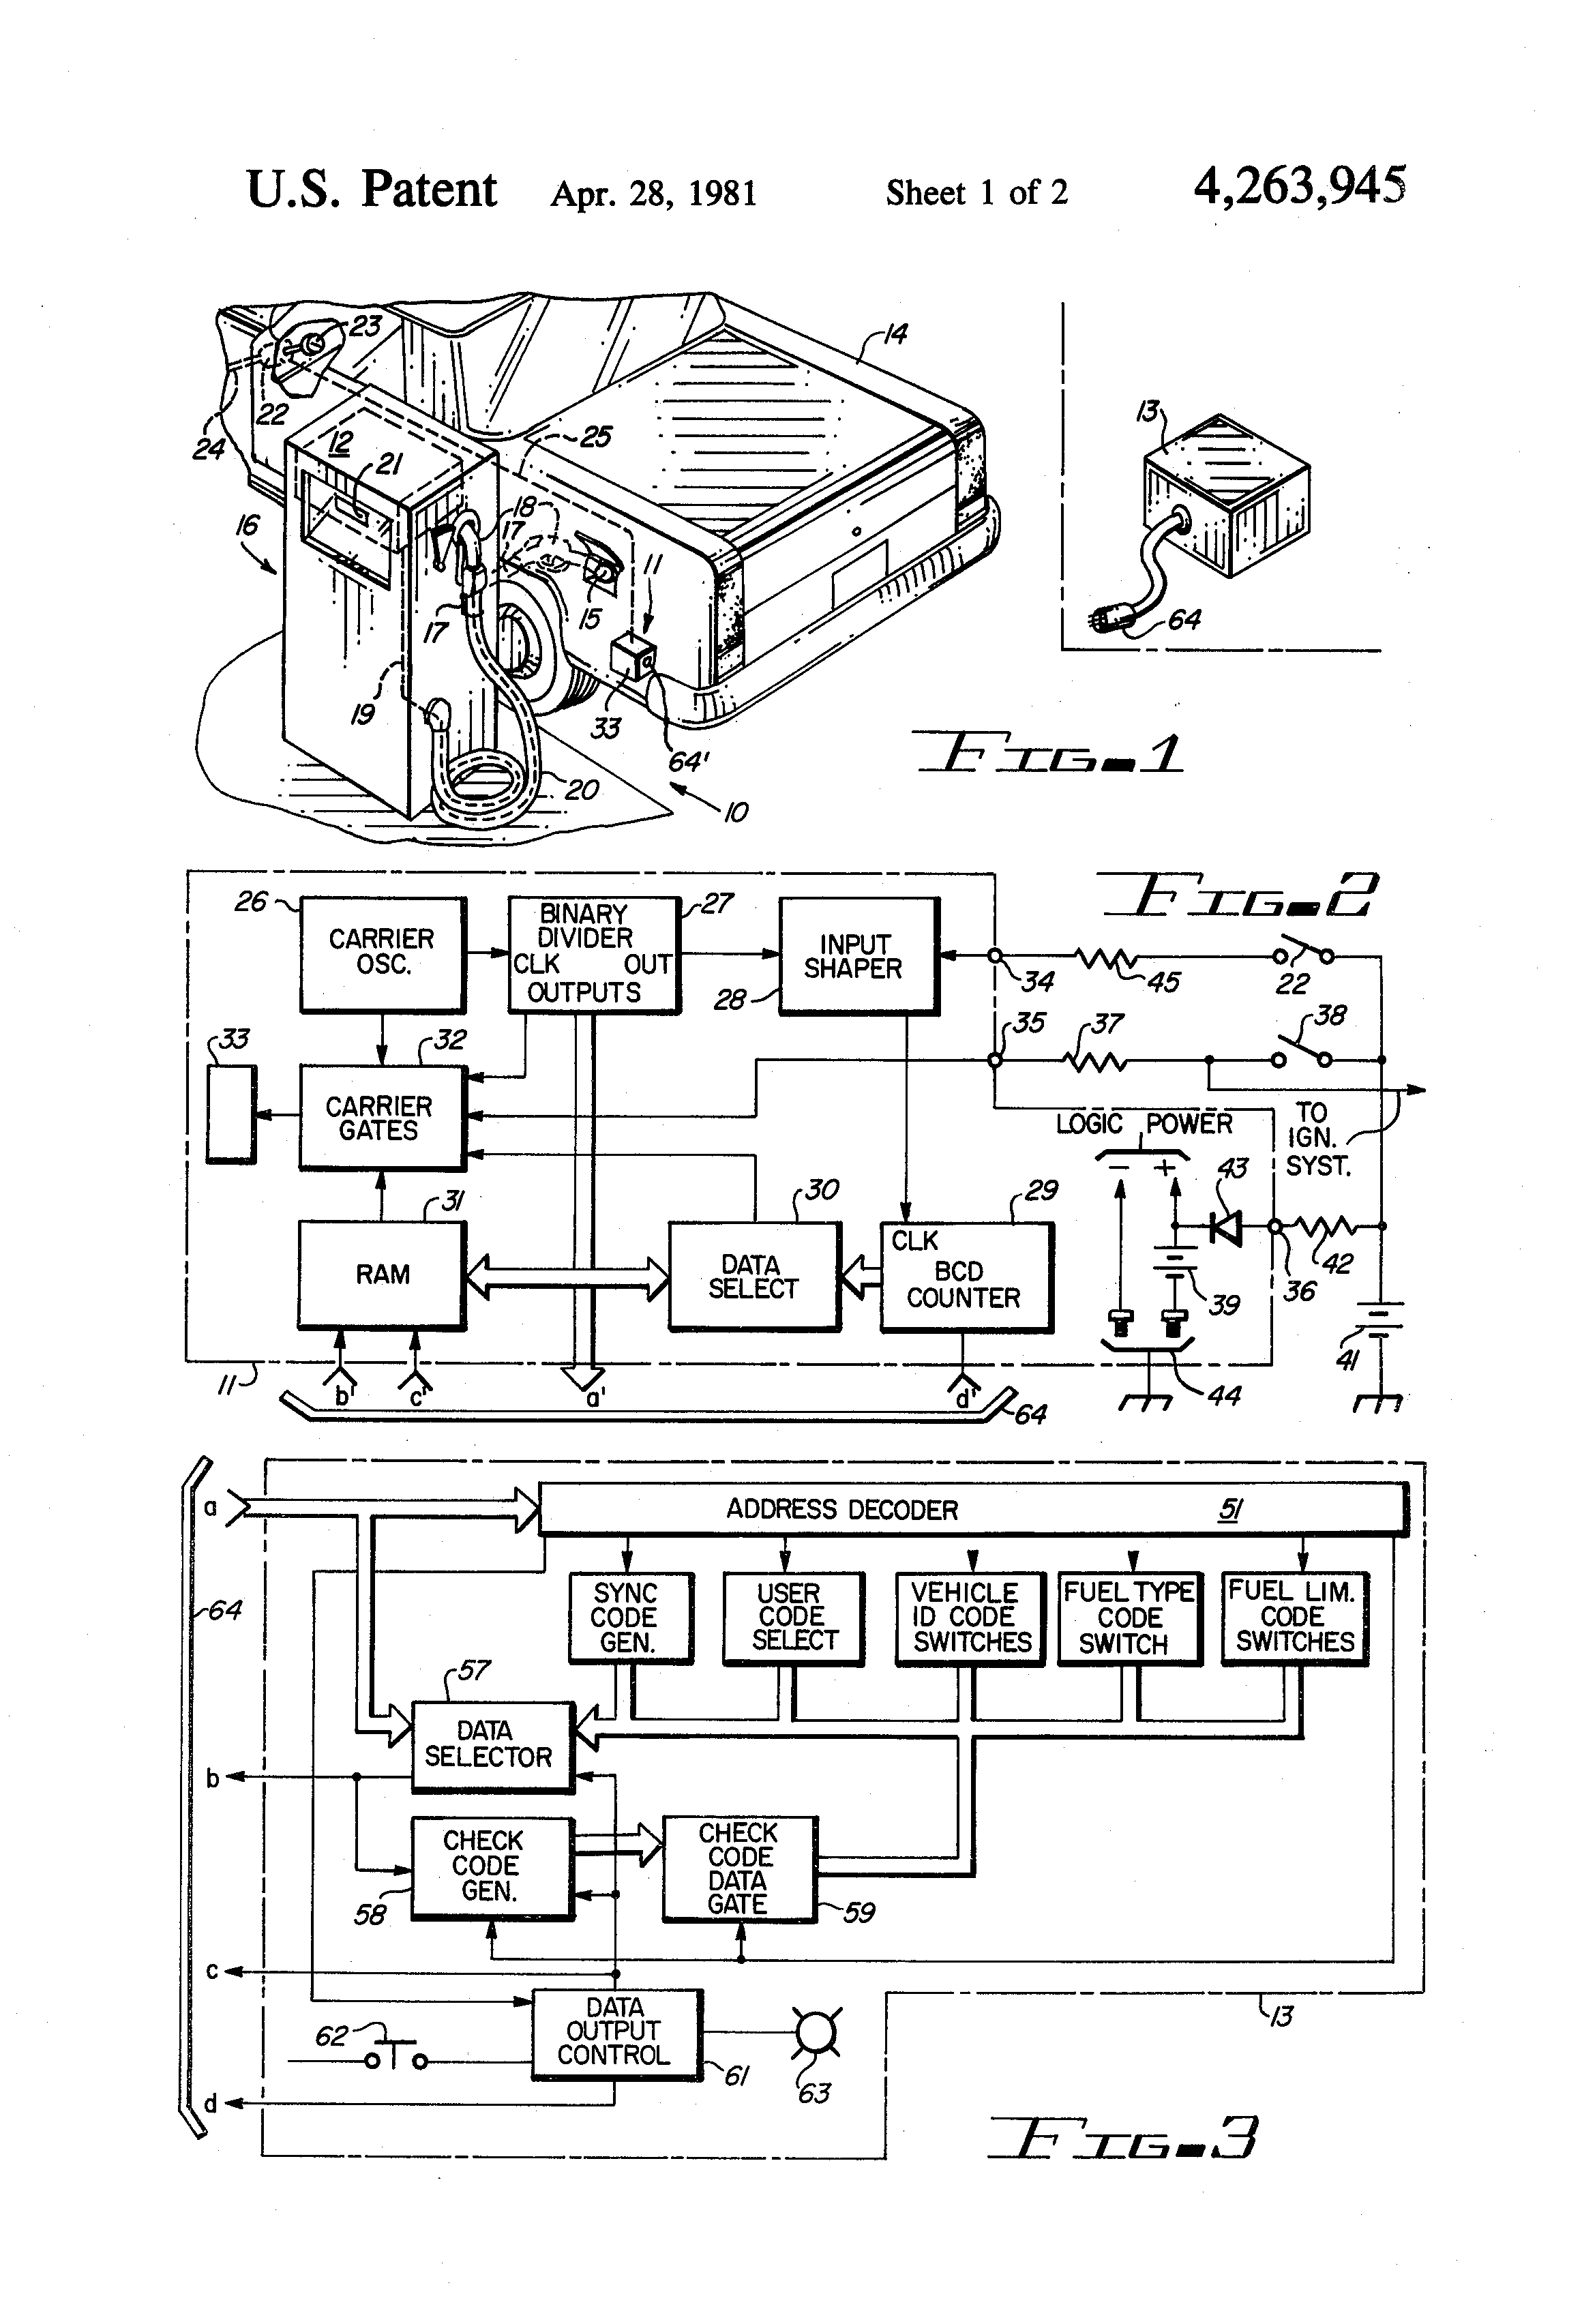 US4263945 1 patent us4263945 automatic fuel dispensing control system gilbarco advantage wiring diagram at arjmand.co